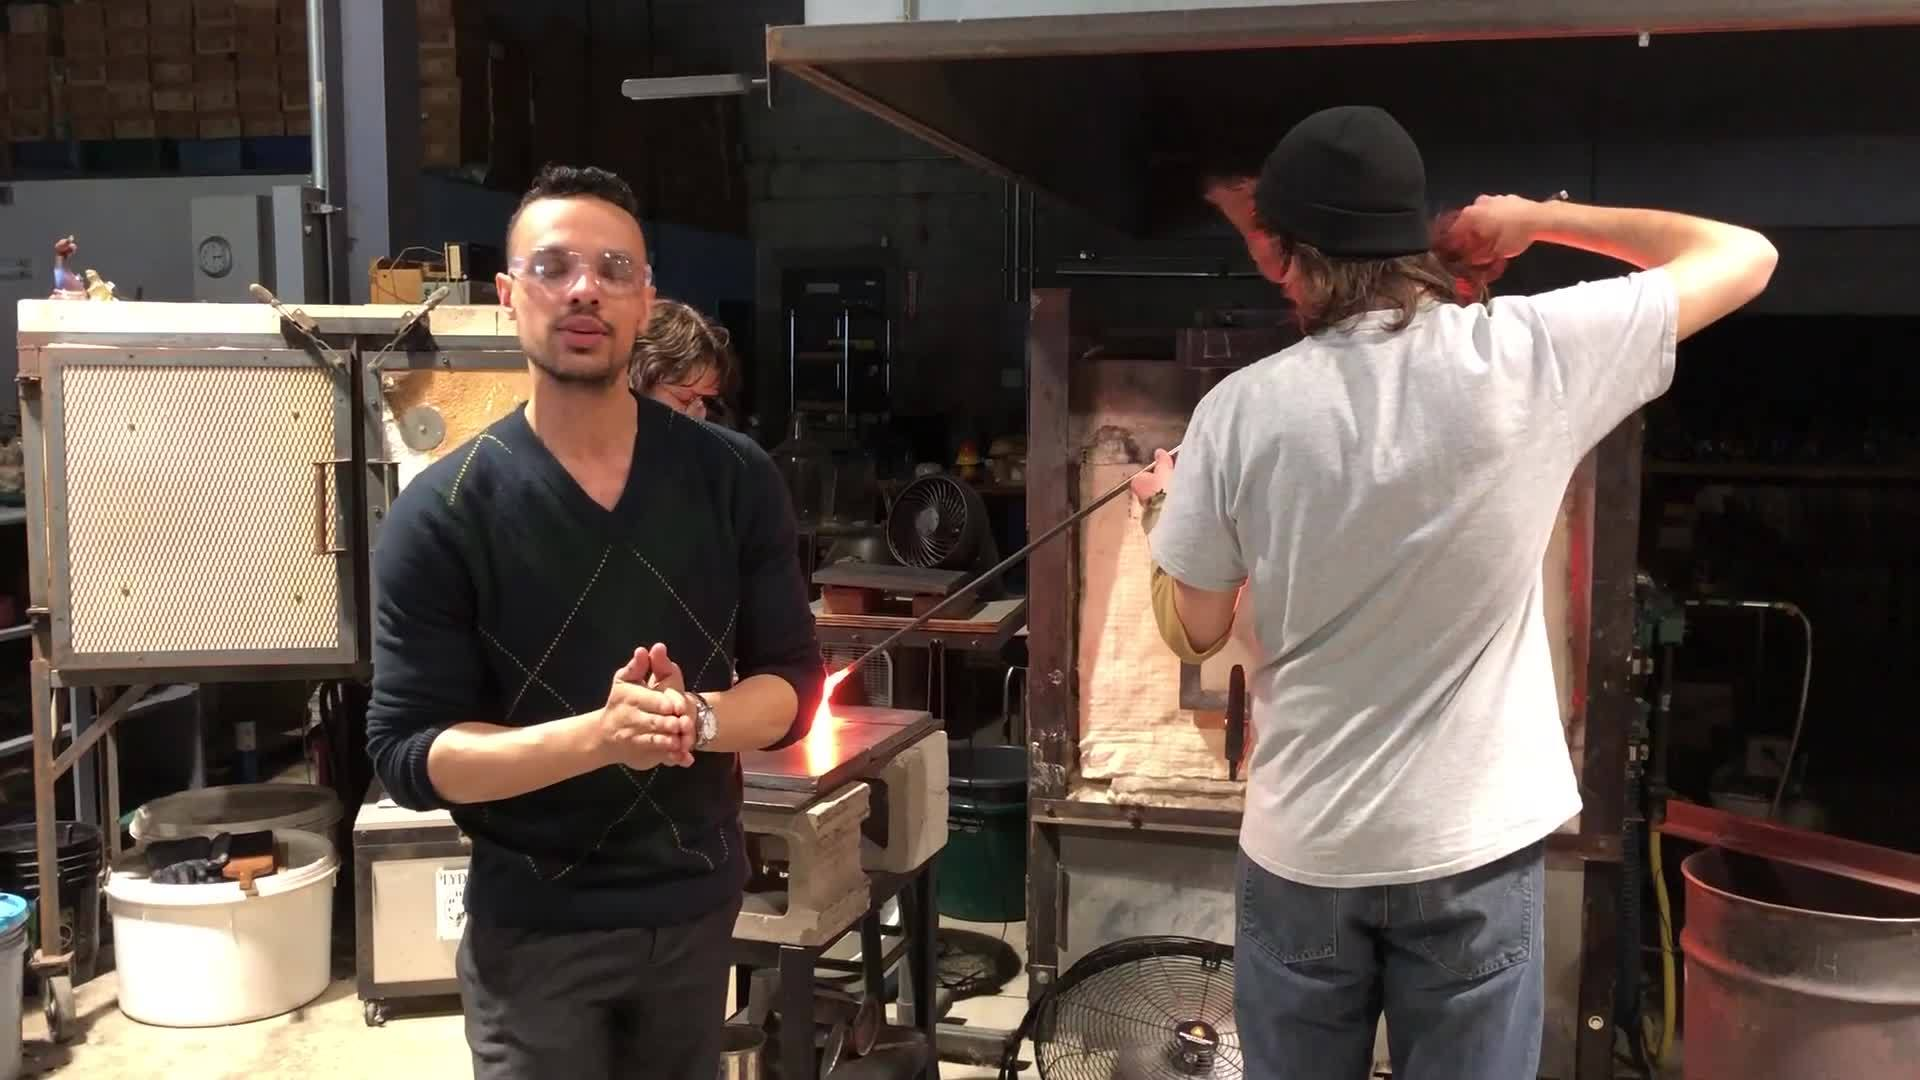 WEB EXTRA: Here's how you make glass; mother - son team show you how